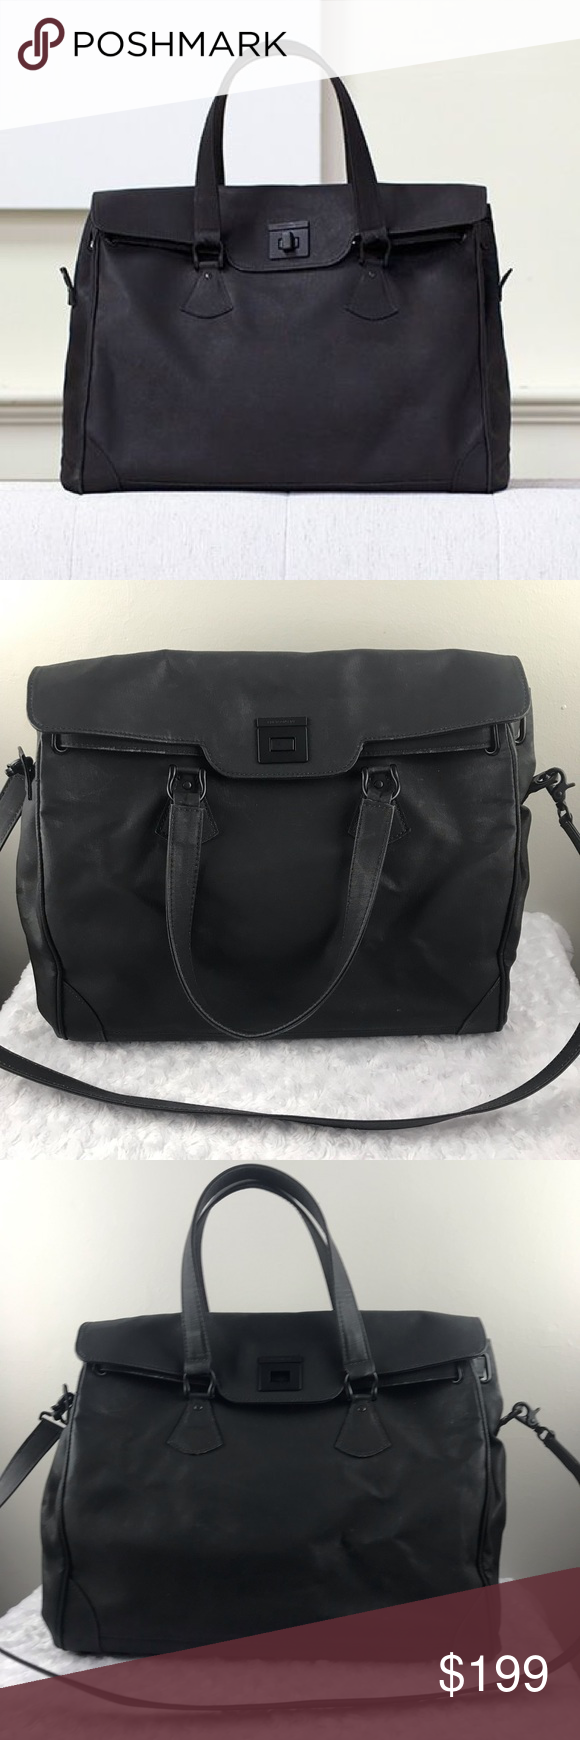 Emerson Fry Waxed Tactical Emerson Bag Emerson Fry Waxed Tactical Emerson Bag  Excellent condition  Charcoal Black Perfect for laptop Emerson Fry Bags #emersonfry Emerson Fry Waxed Tactical Emerson Bag Emerson Fry Waxed Tactical Emerson Bag  Excellent condition  Charcoal Black Perfect for laptop Emerson Fry Bags #emersonfry